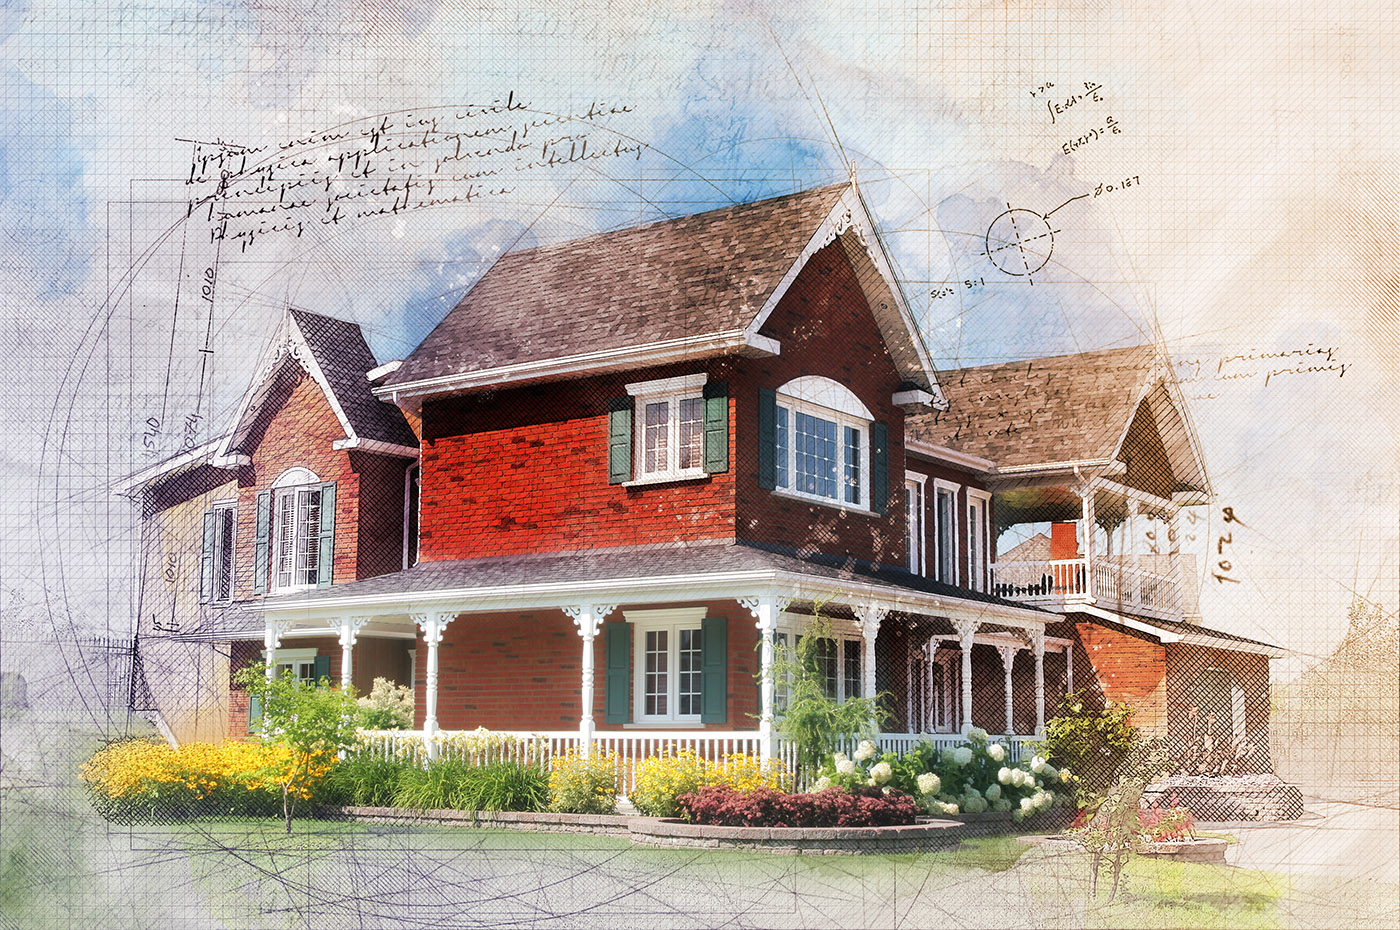 Beautiful Cottage Sketch Image - Stock Photography